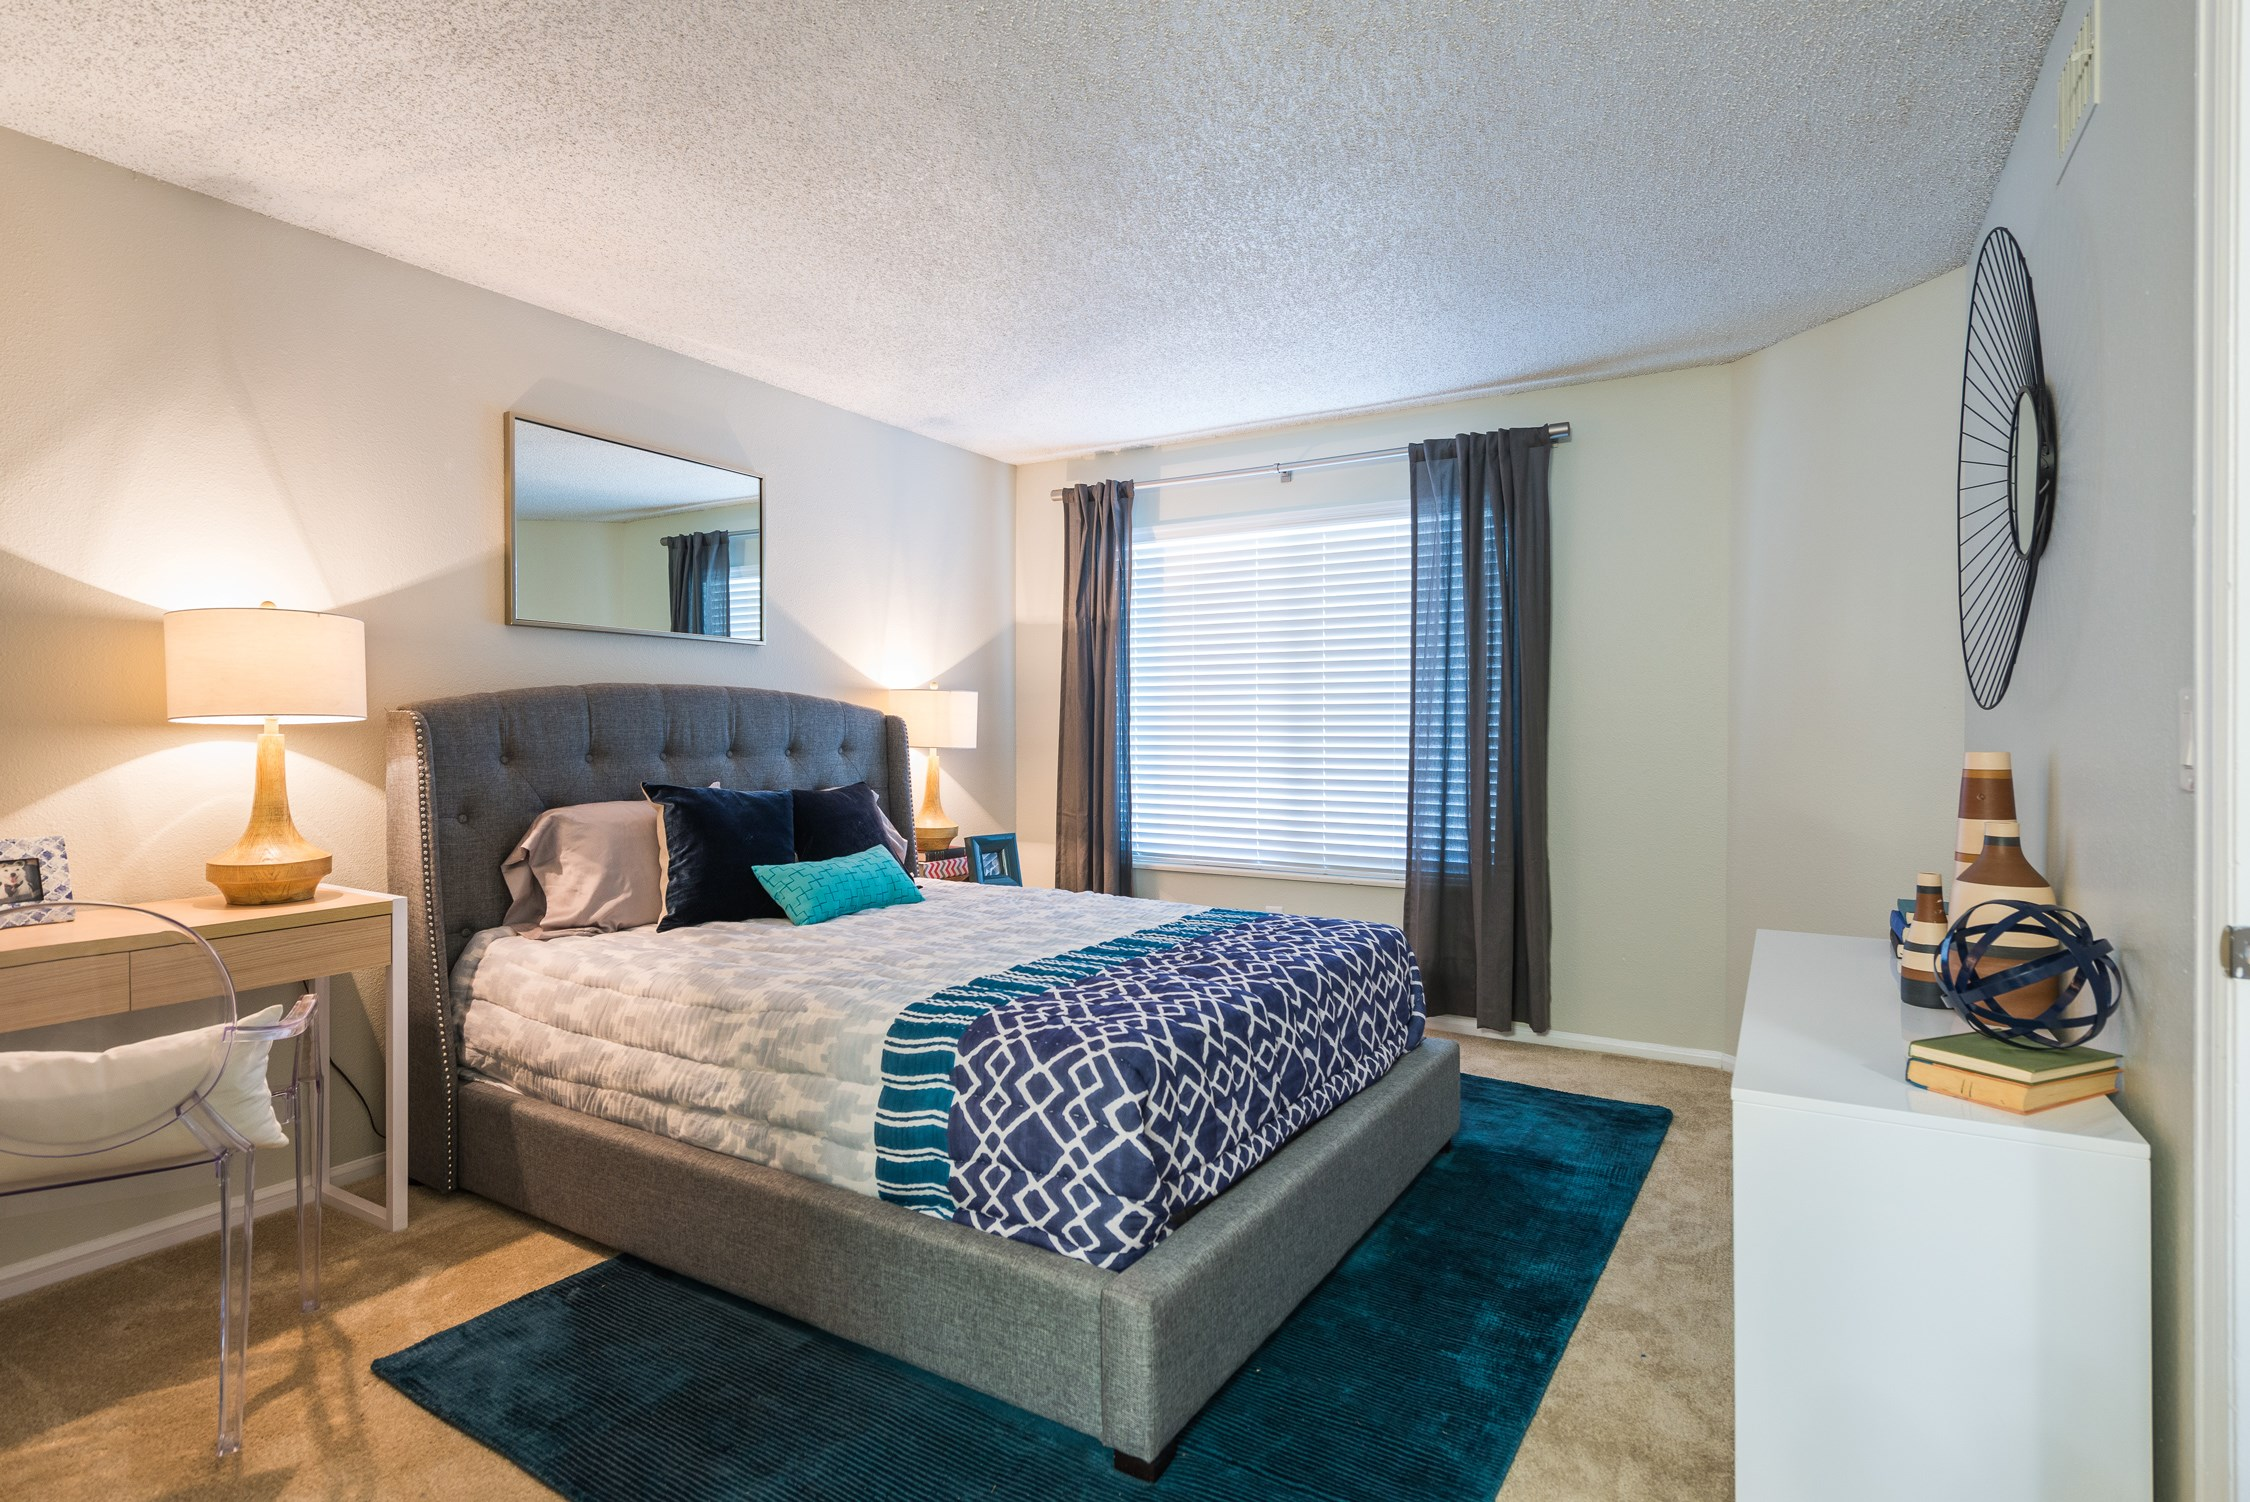 Bedroom at Conifer Creek Apartments in Aurora, IL